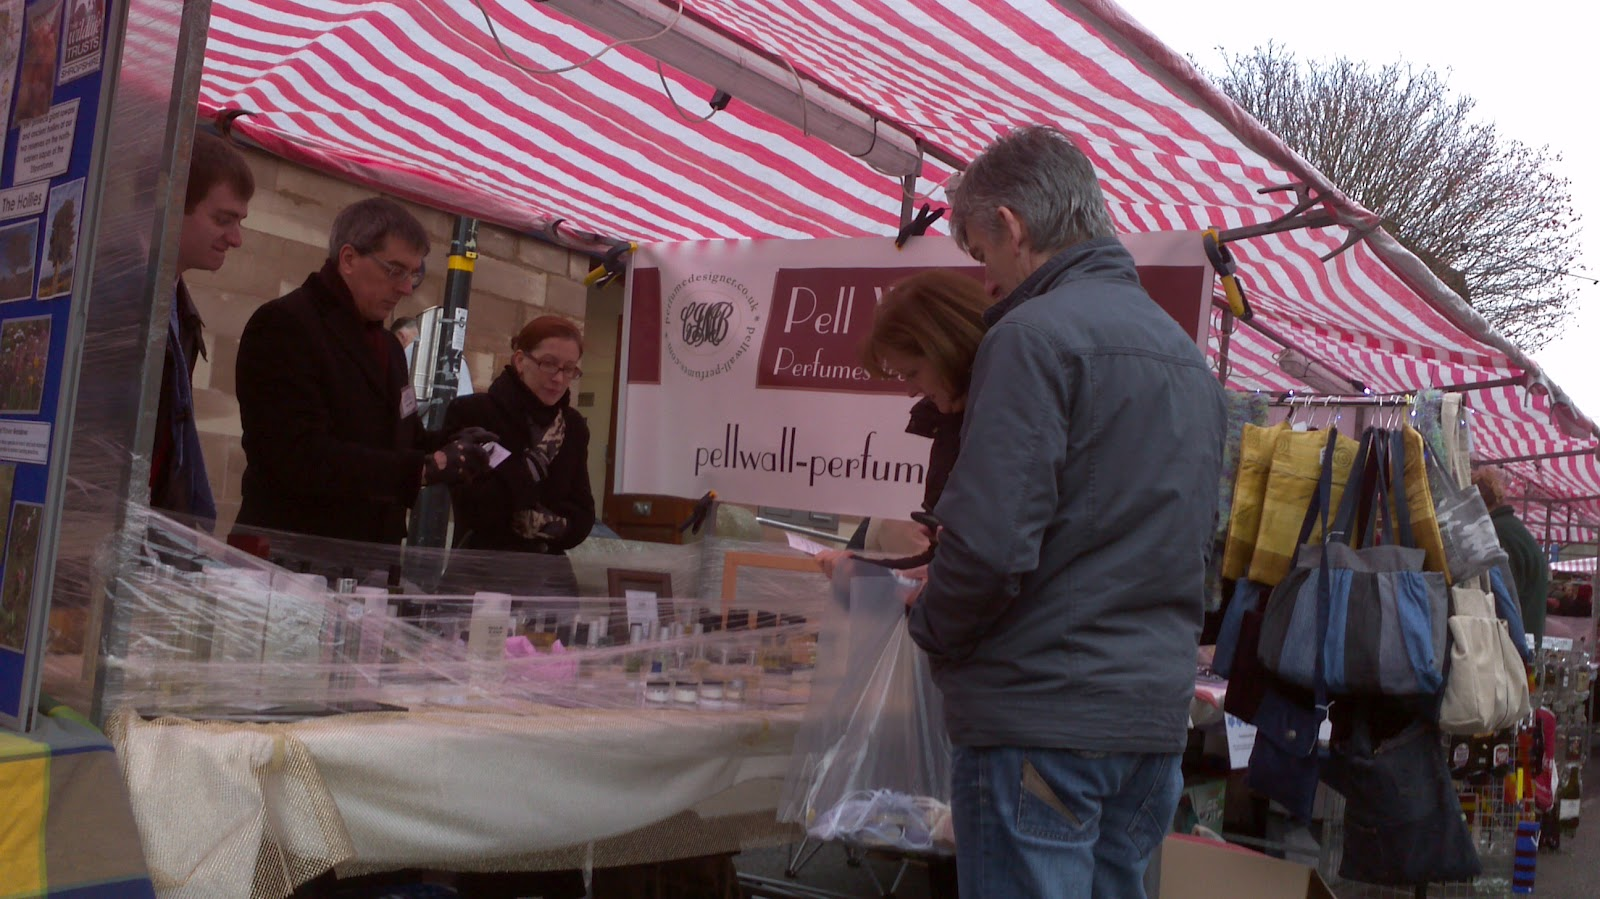 Pell Wall Perfumes at the November 2011 Farmer's Market in Market Drayton